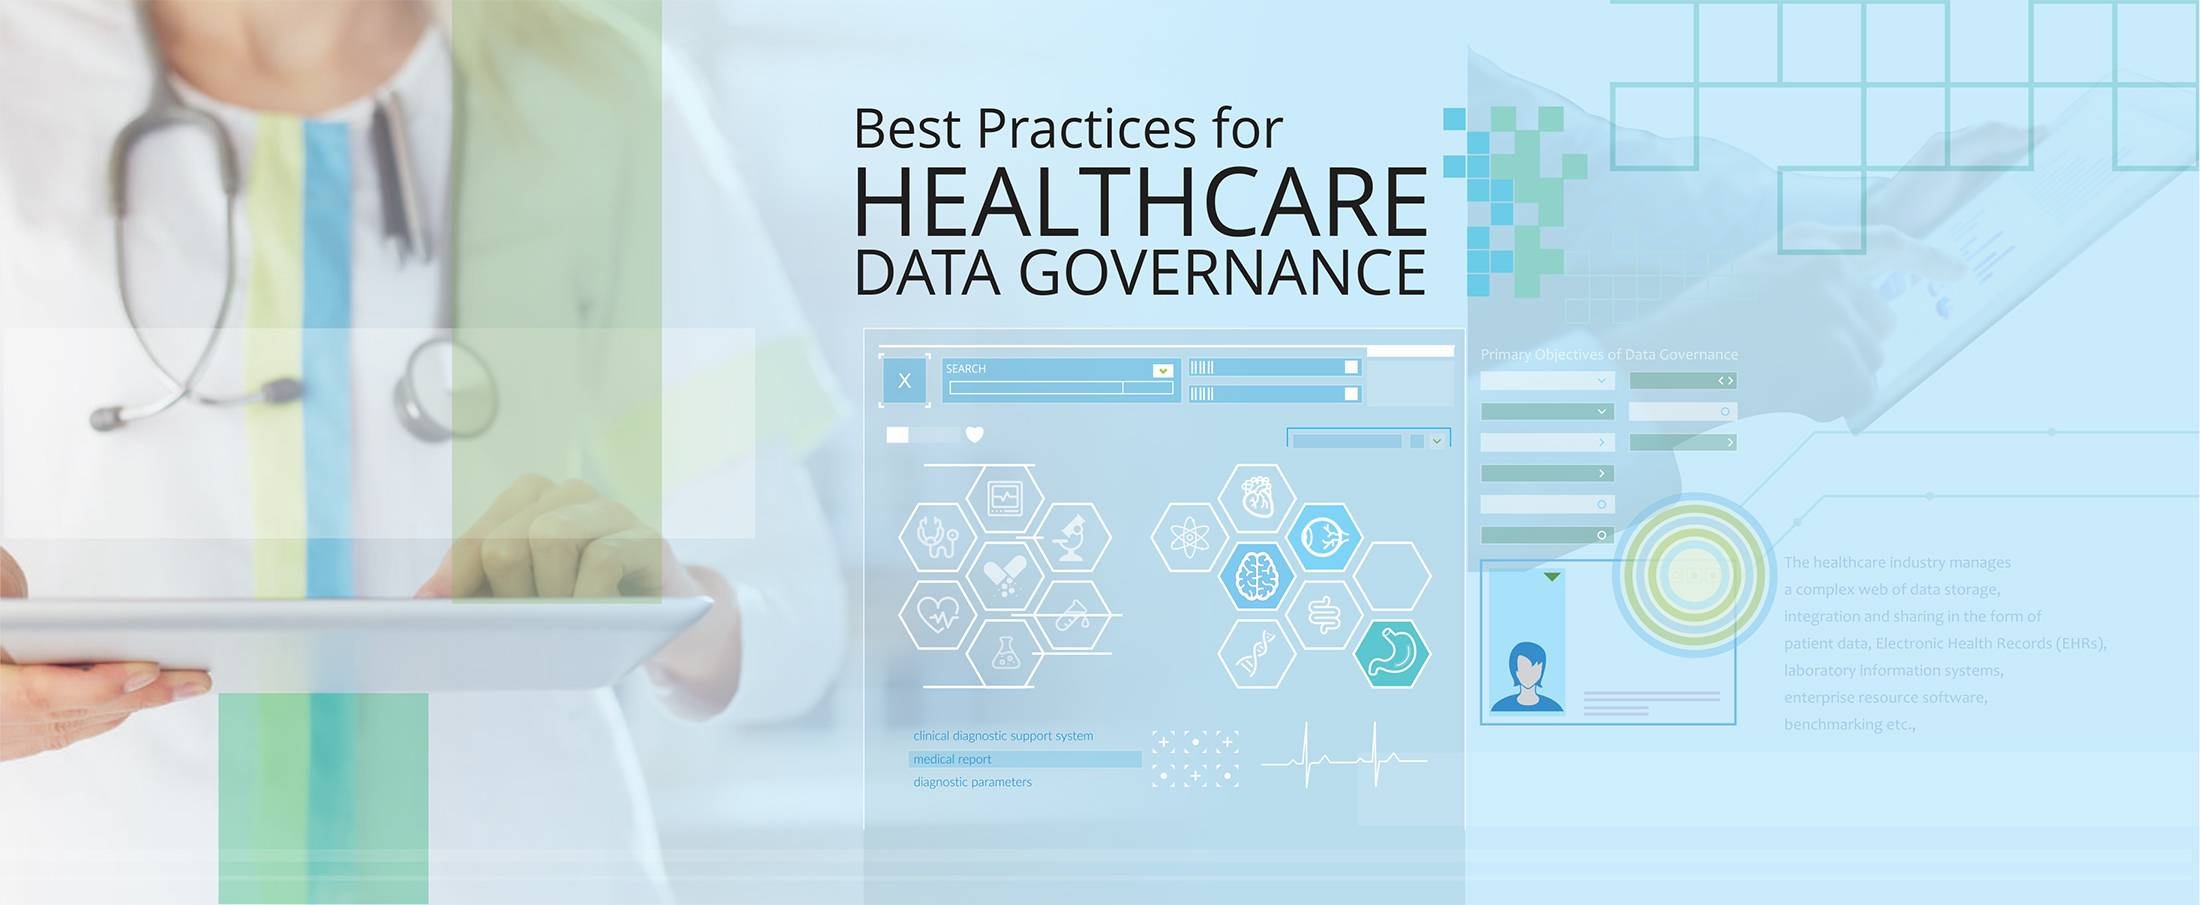 Best Practices for Healthcare Data Governance